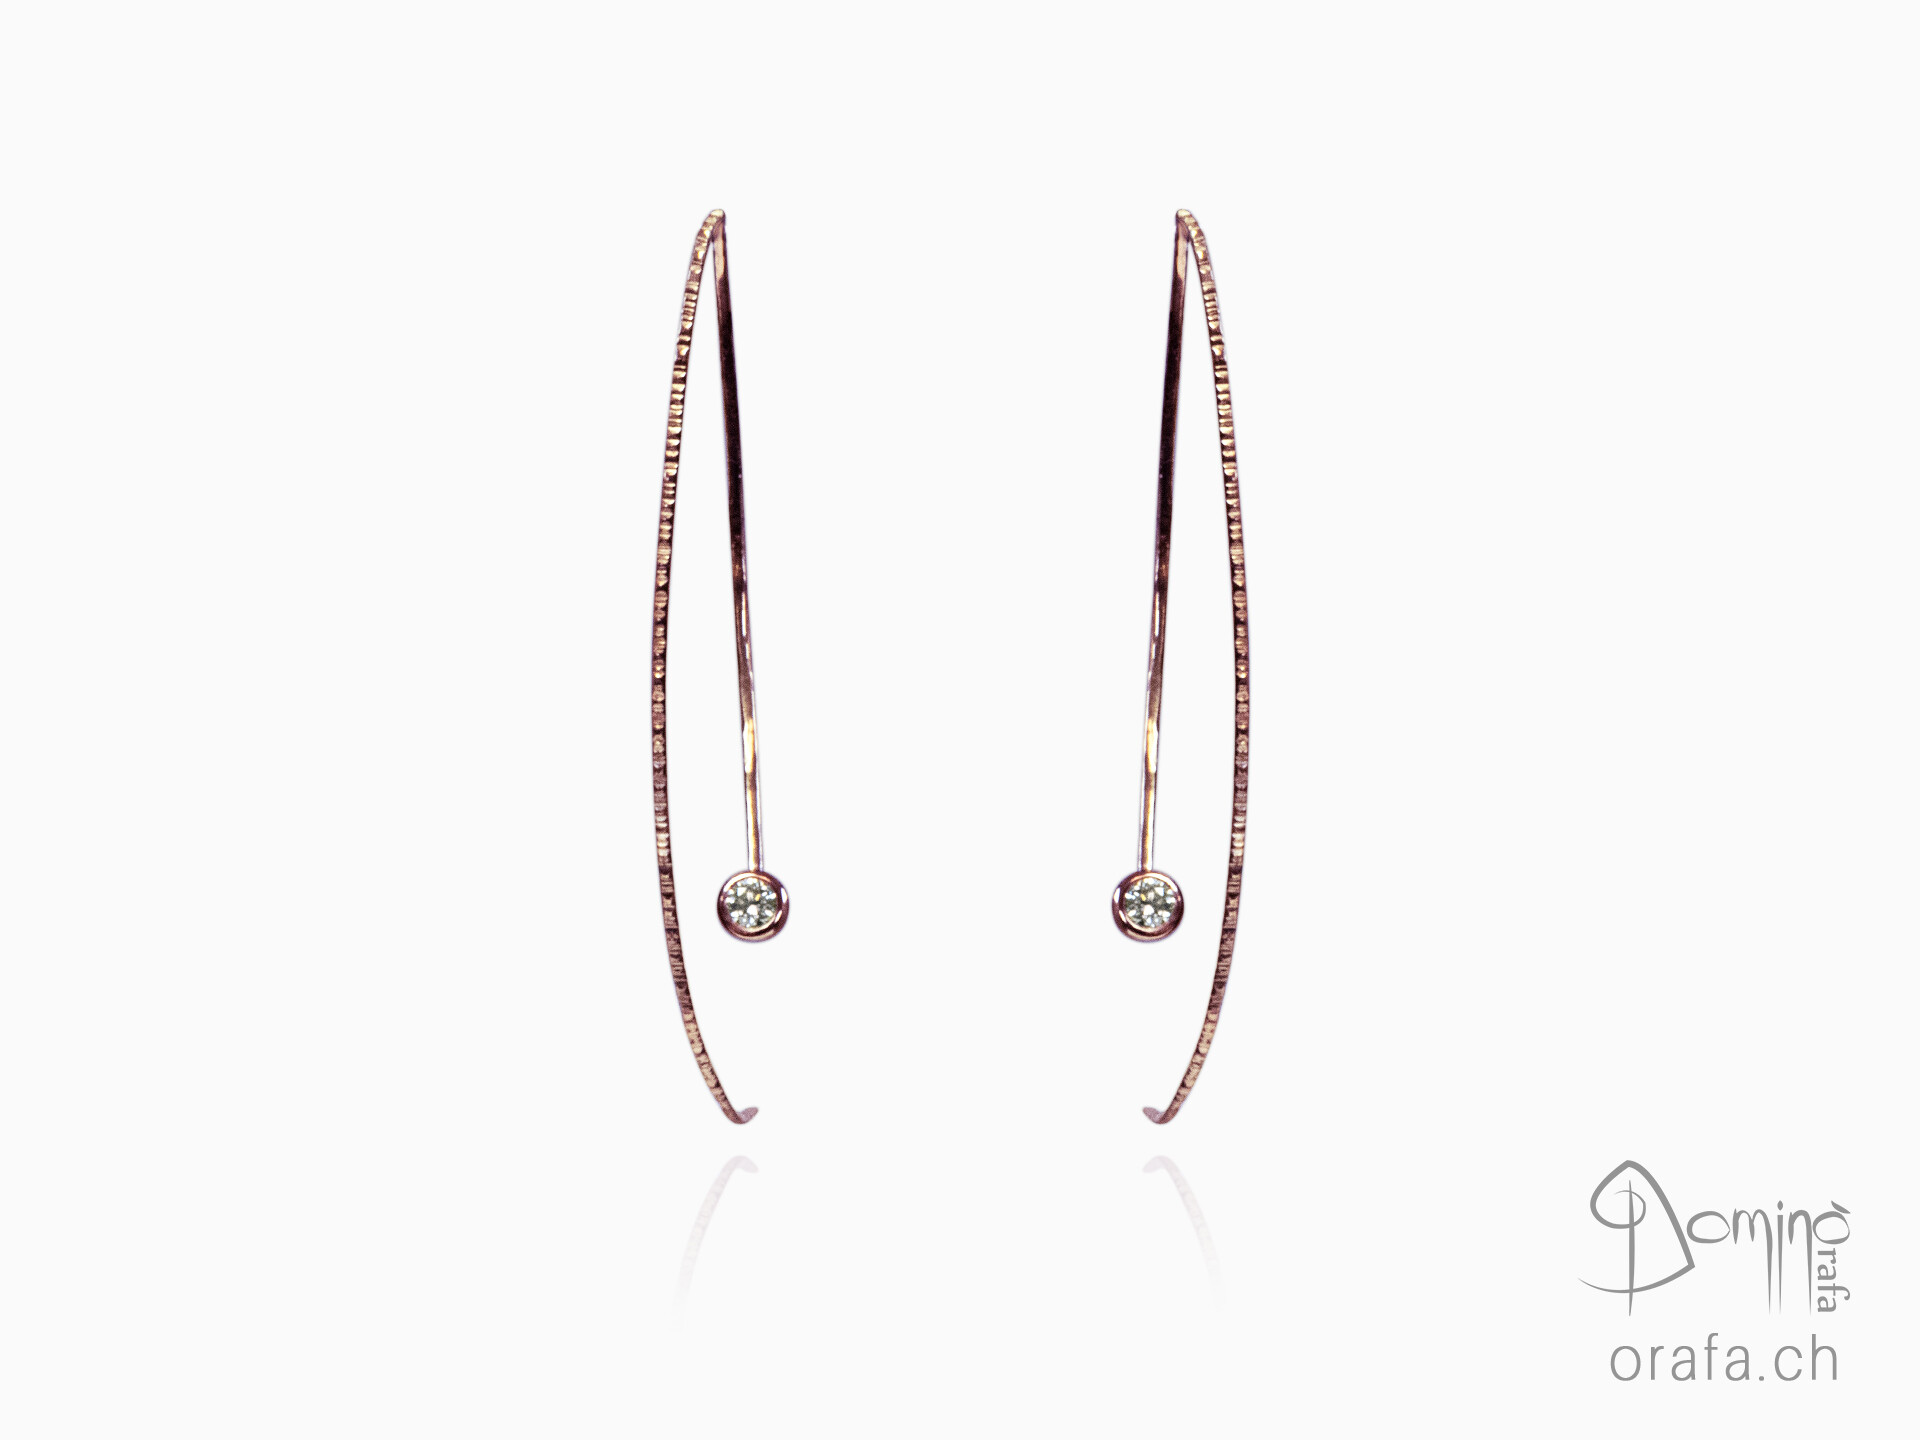 Long earrings with diamonds